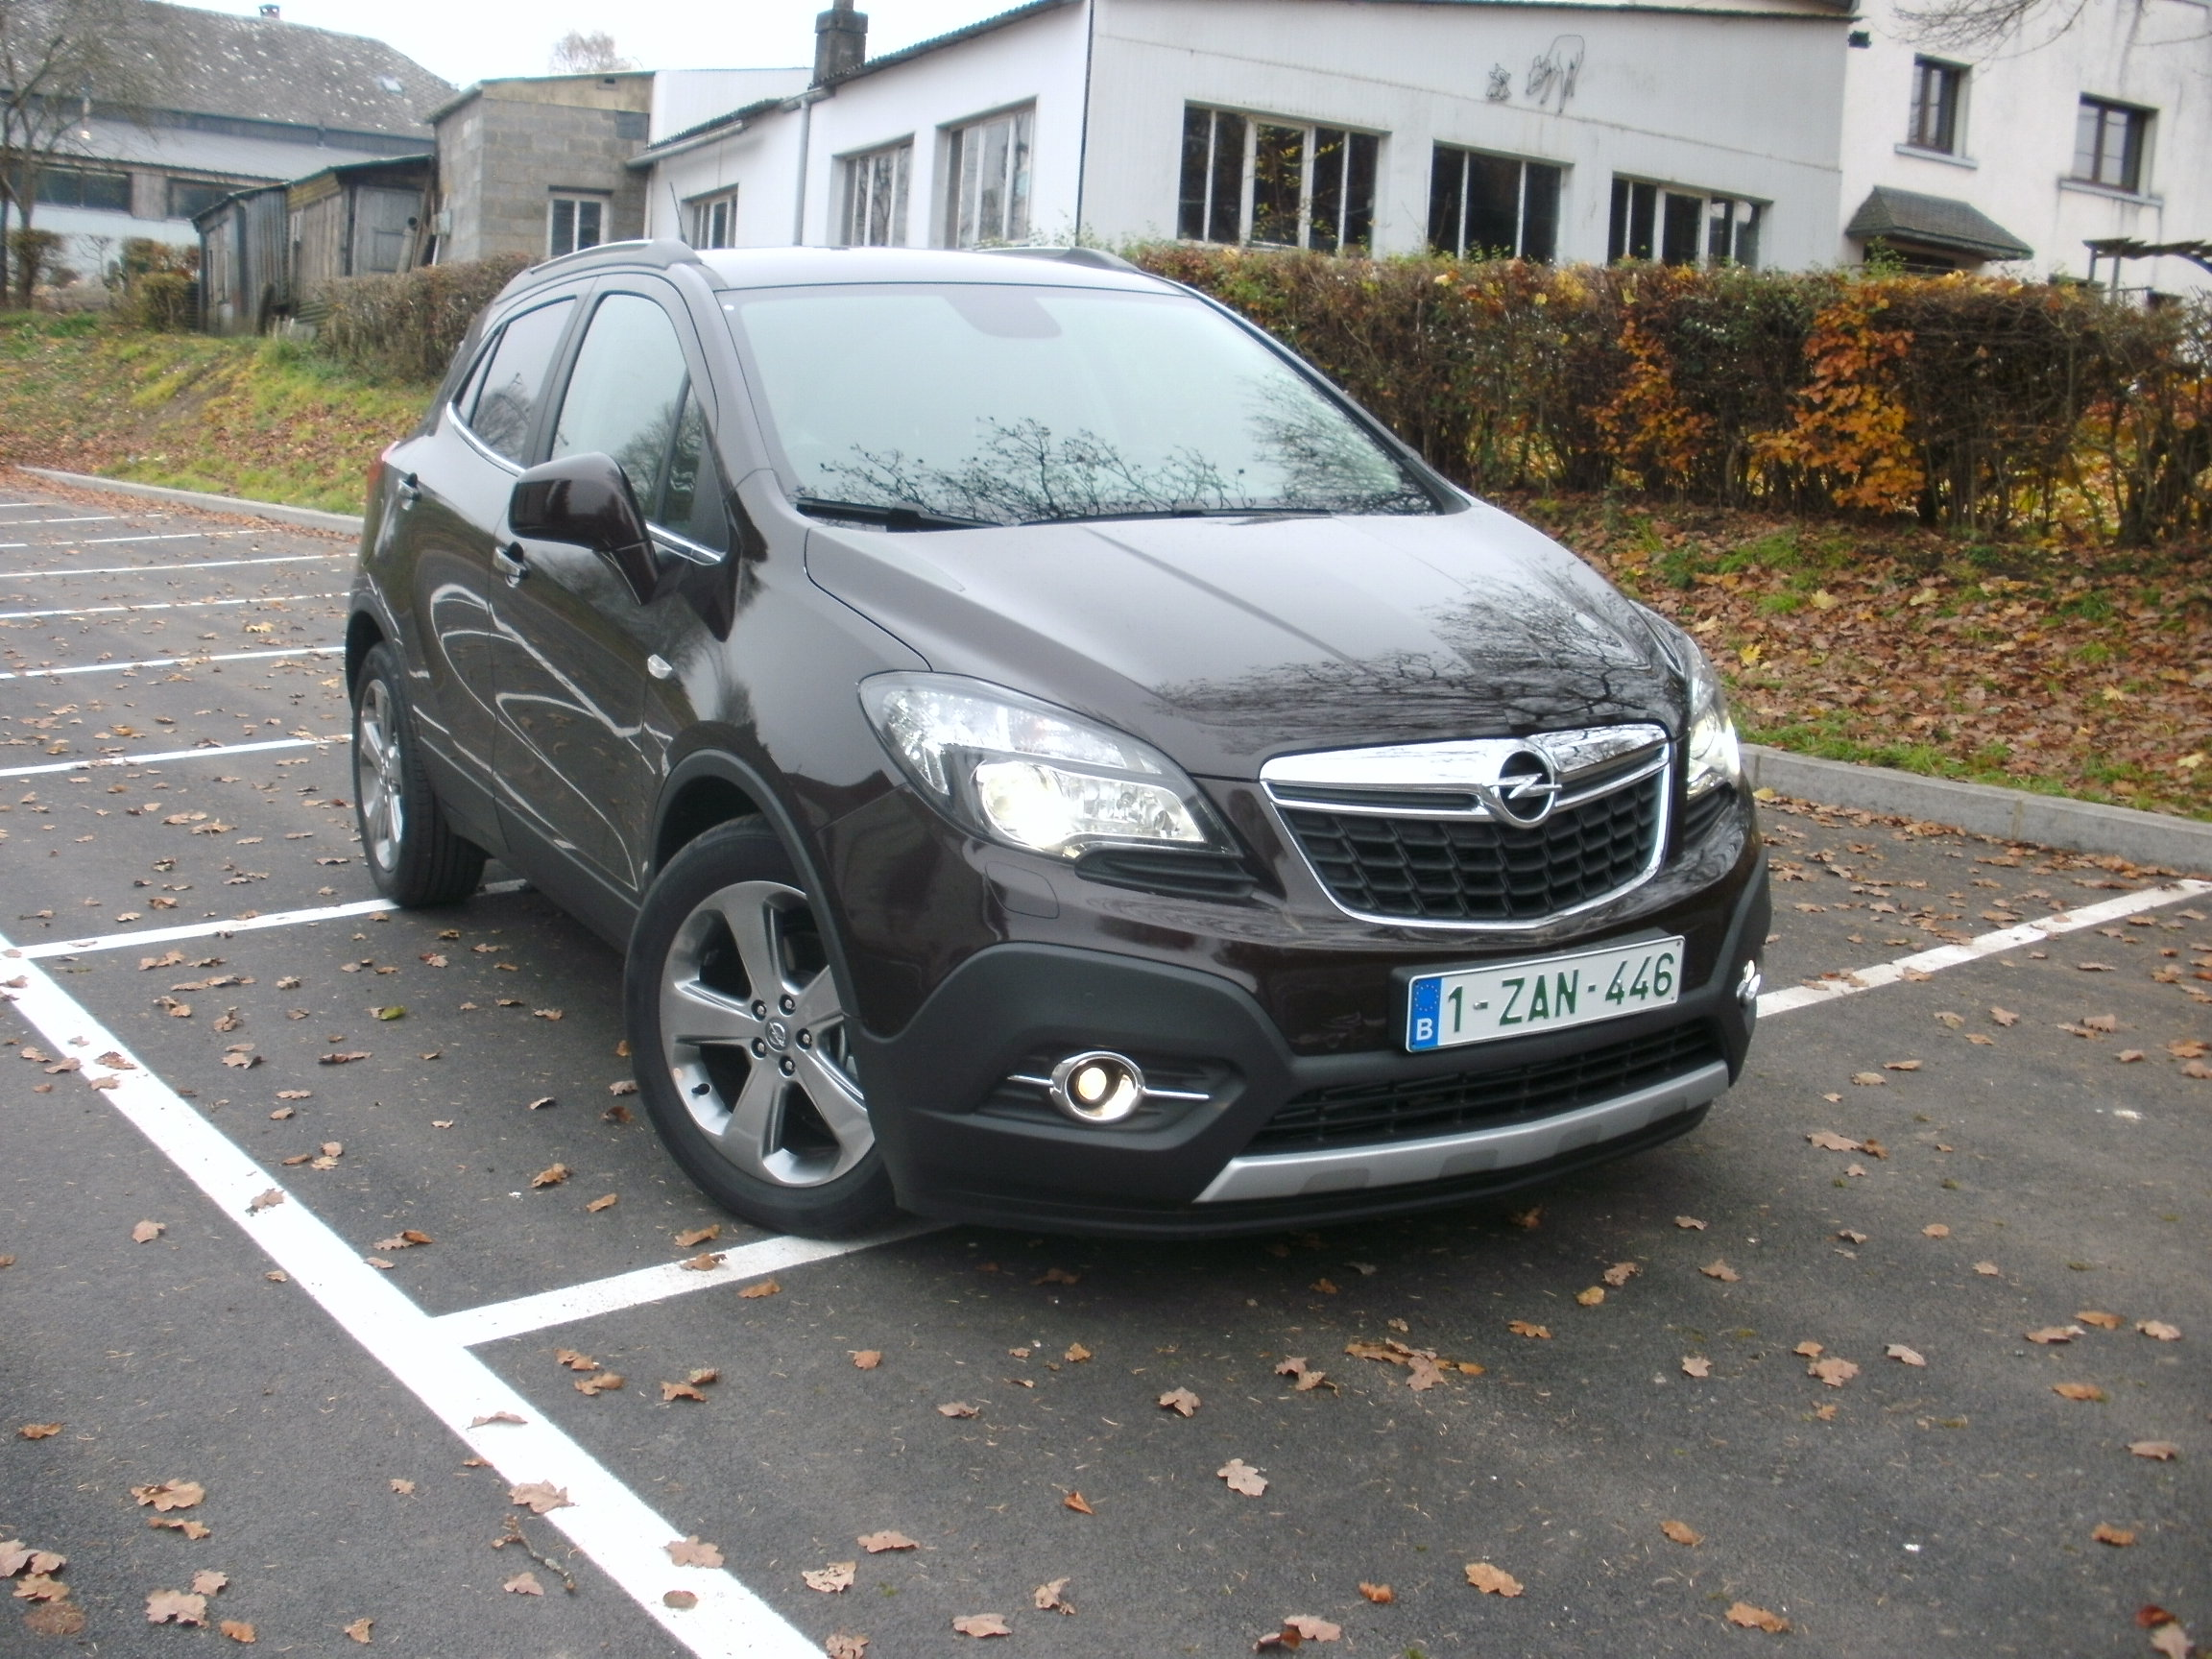 essai opel mokka 13 11 2012 011 opel mokka ditchleterrible photos club. Black Bedroom Furniture Sets. Home Design Ideas